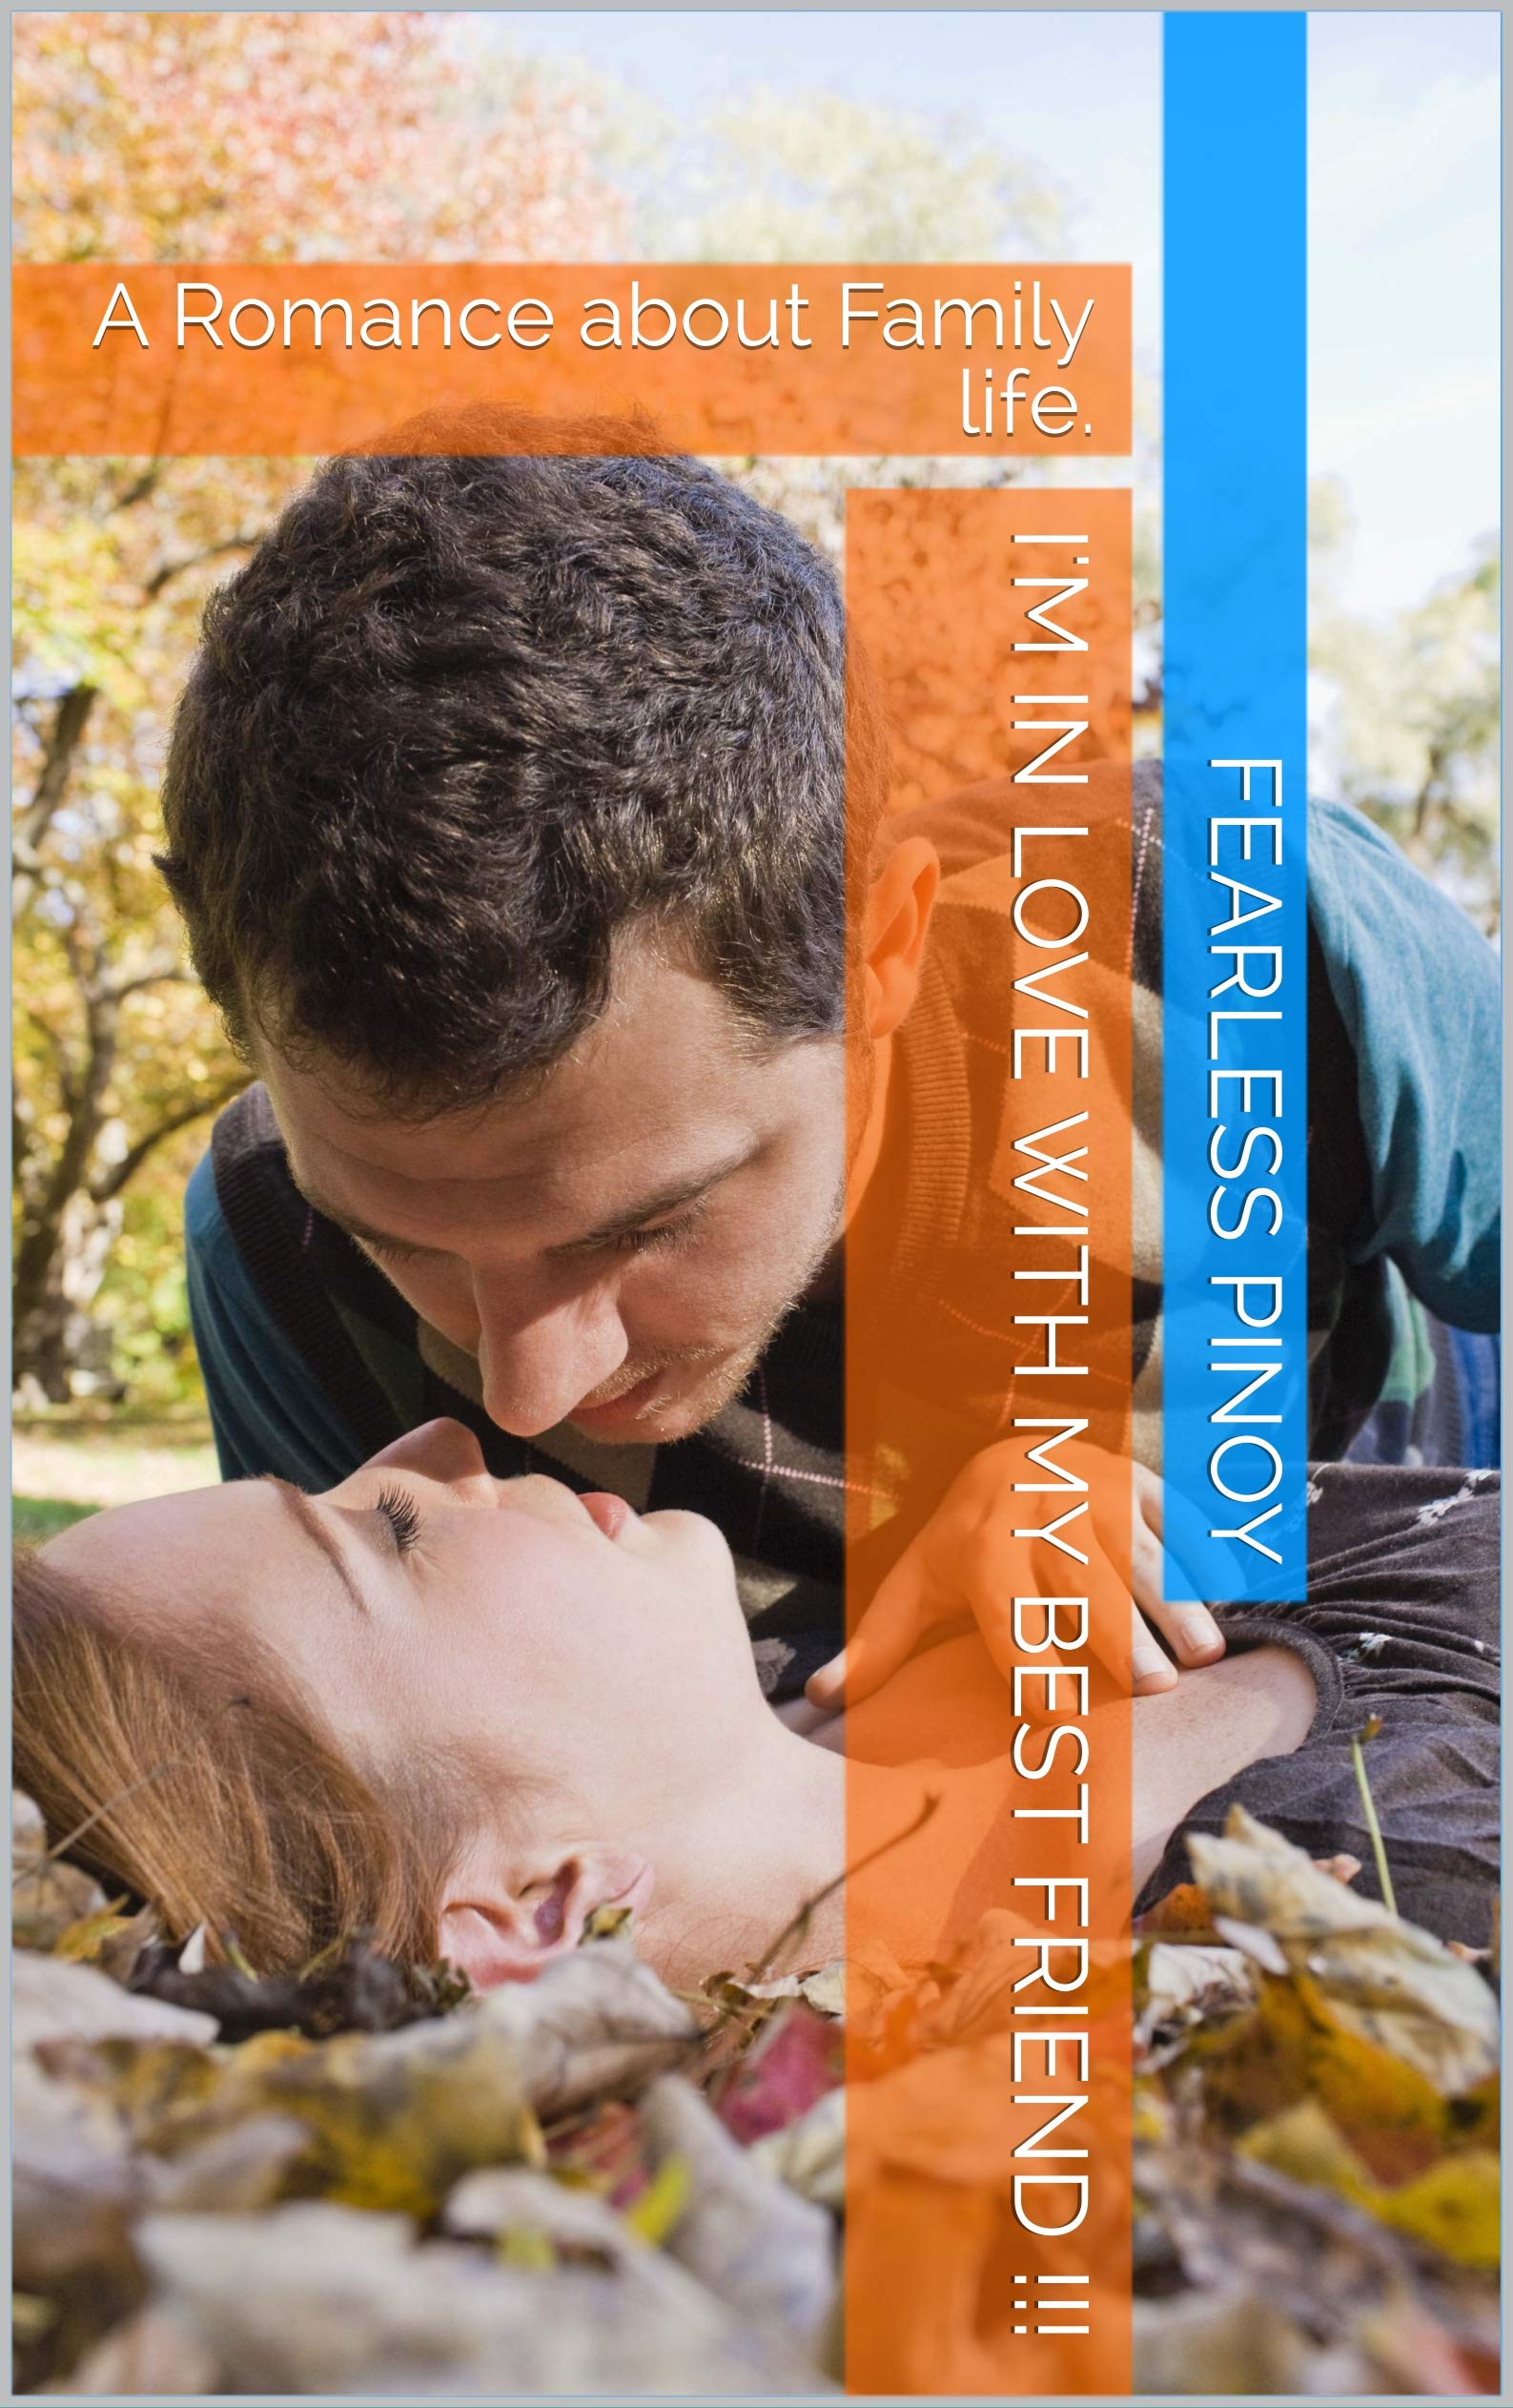 I'm In Love with my Best Friend !!!: A Romance about Family life.